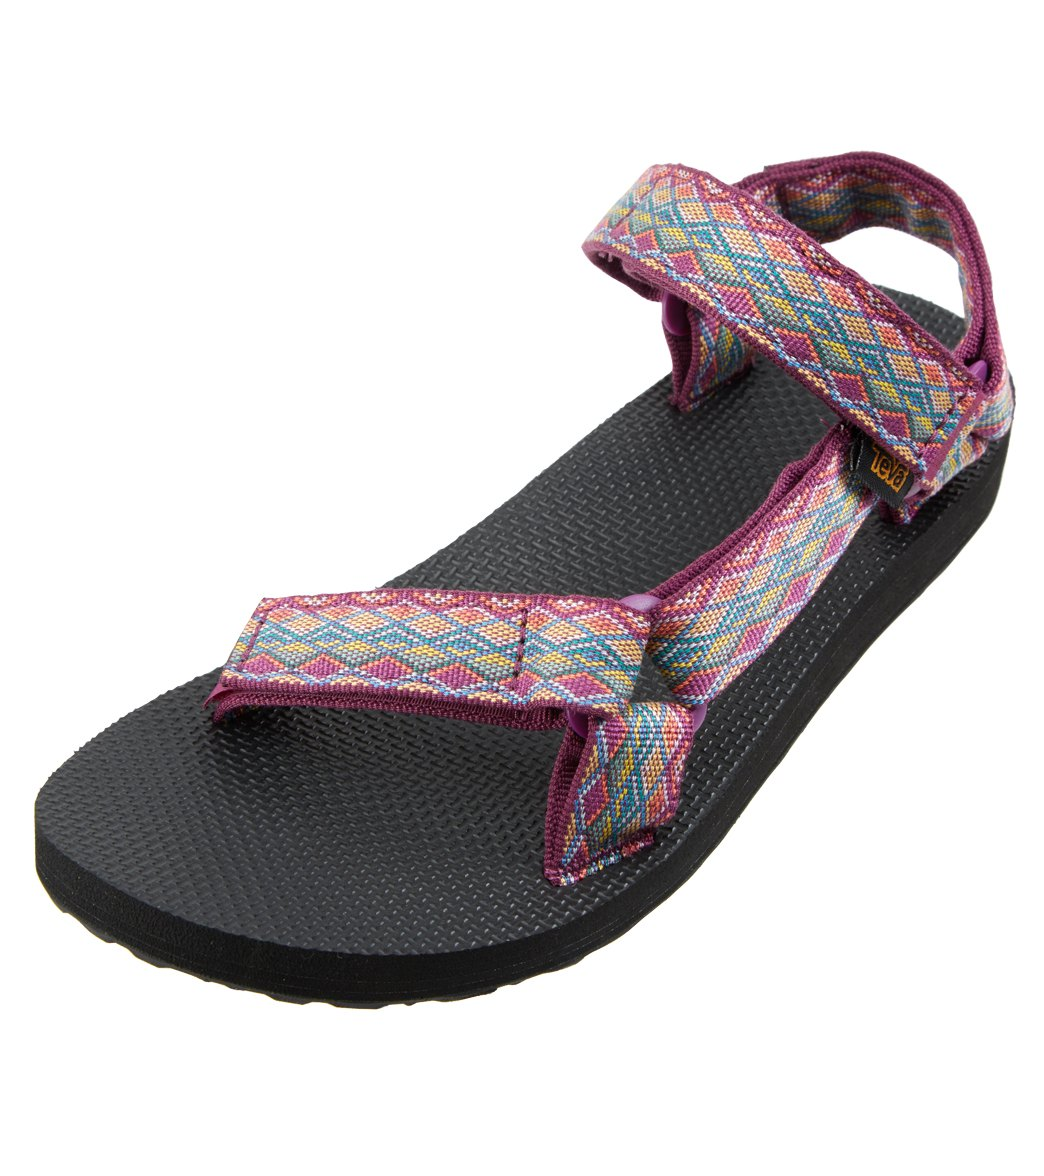 bd9599949 Teva Women s Original Universal Sandal at SwimOutlet.com - Free Shipping